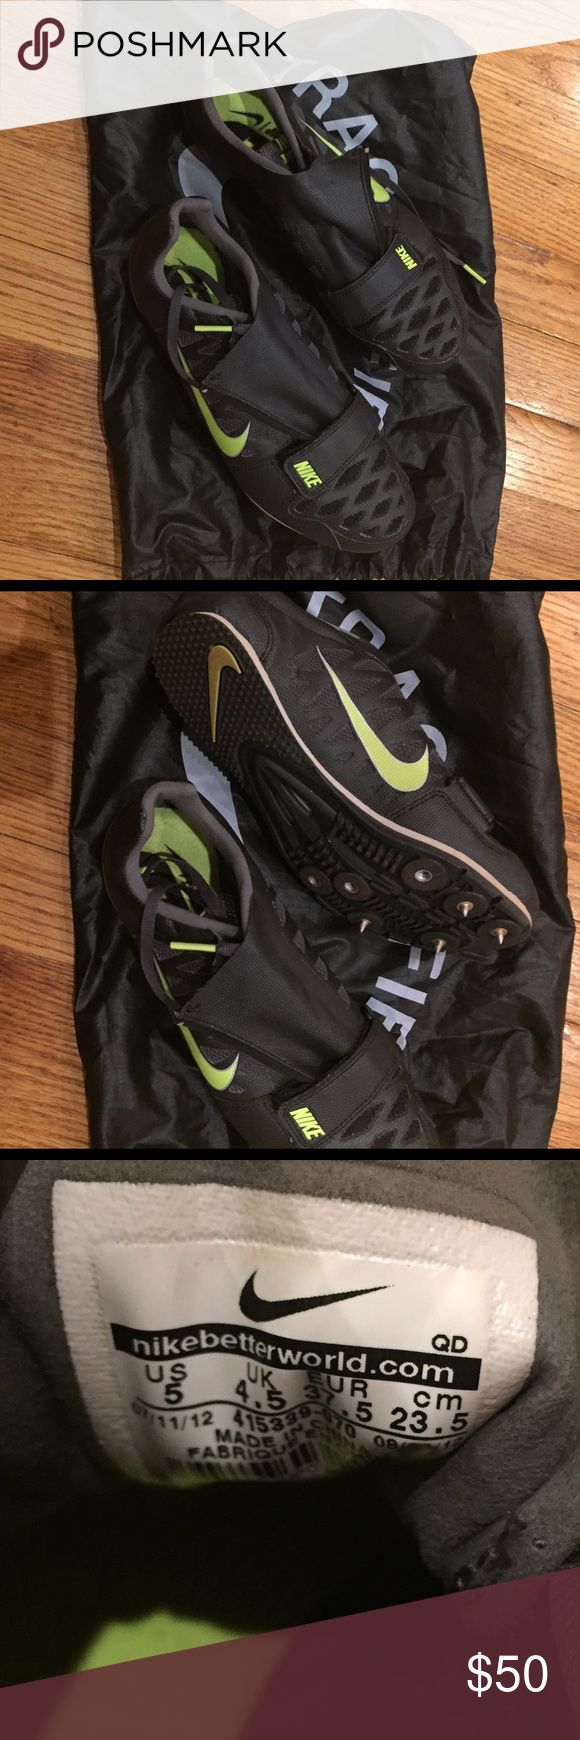 Nike Spikes Zoom LJ Black/green Nike spikes. Used for long jump. Will need new spikes. Bag included Nike Shoes Athletic Shoes